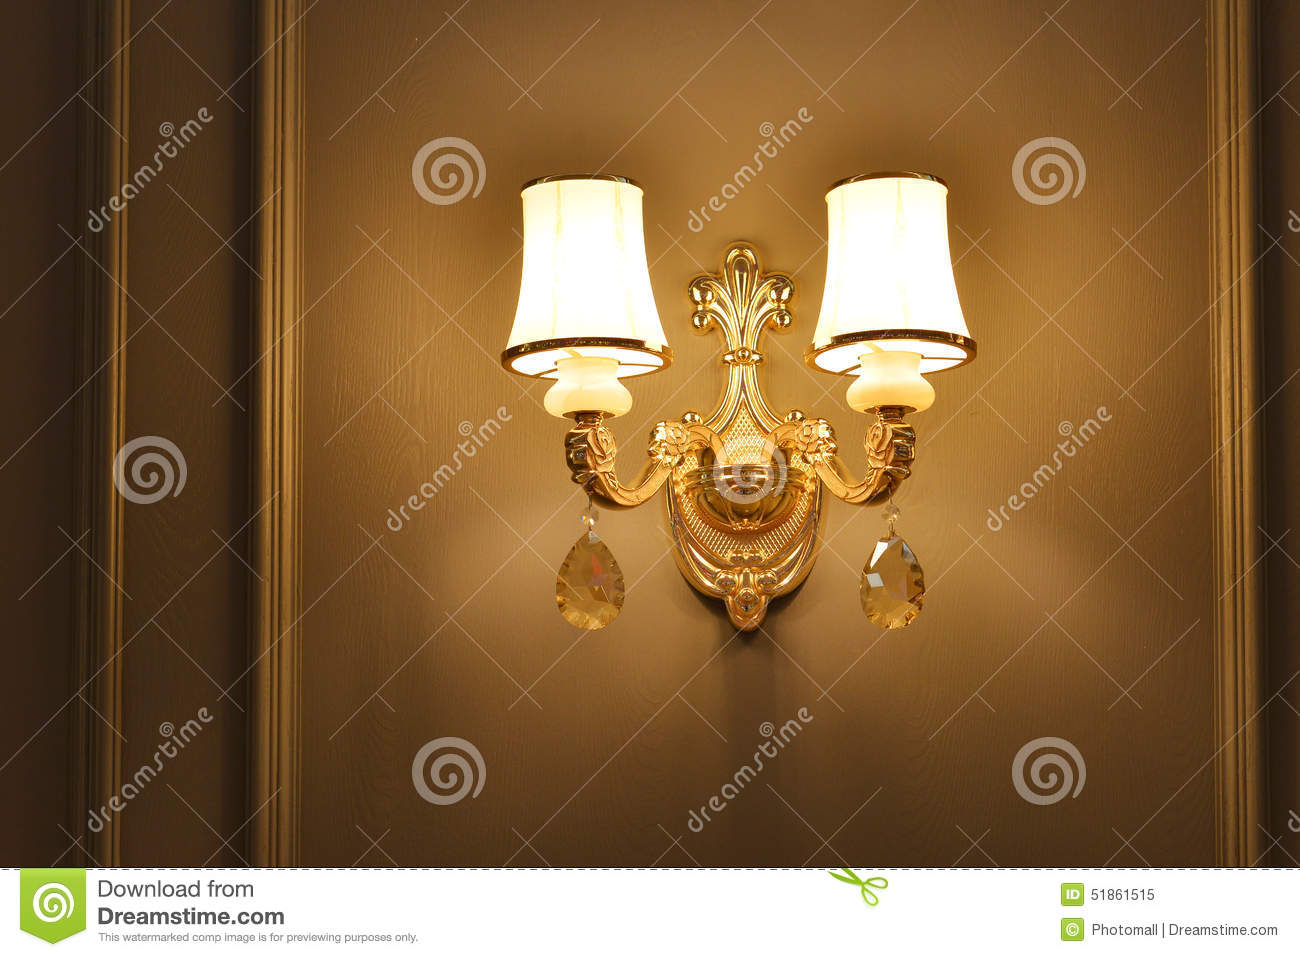 Luxury Crystal Wall Lights : Luxury Crystal Wall Lighting Stock Image - Image: 51861515